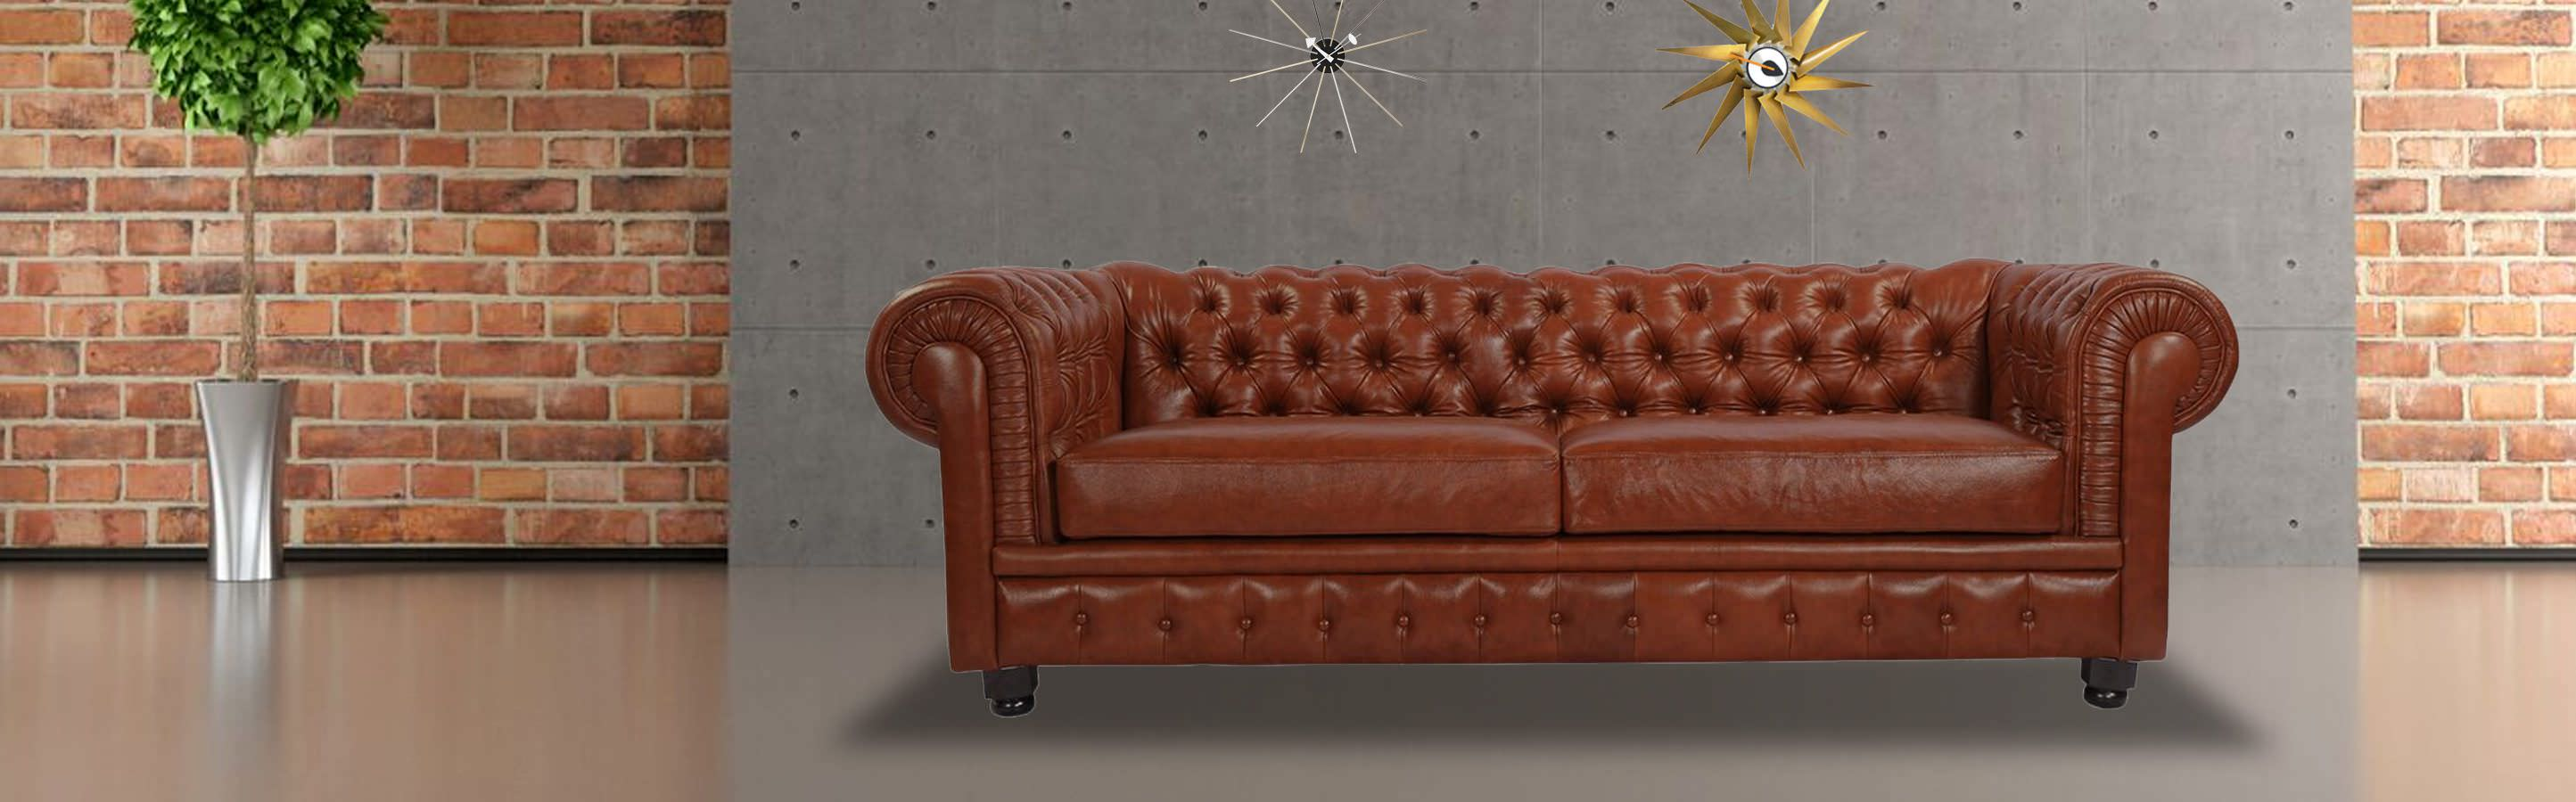 Chesterfield Sofa Chestnut Premium Leather Kar l